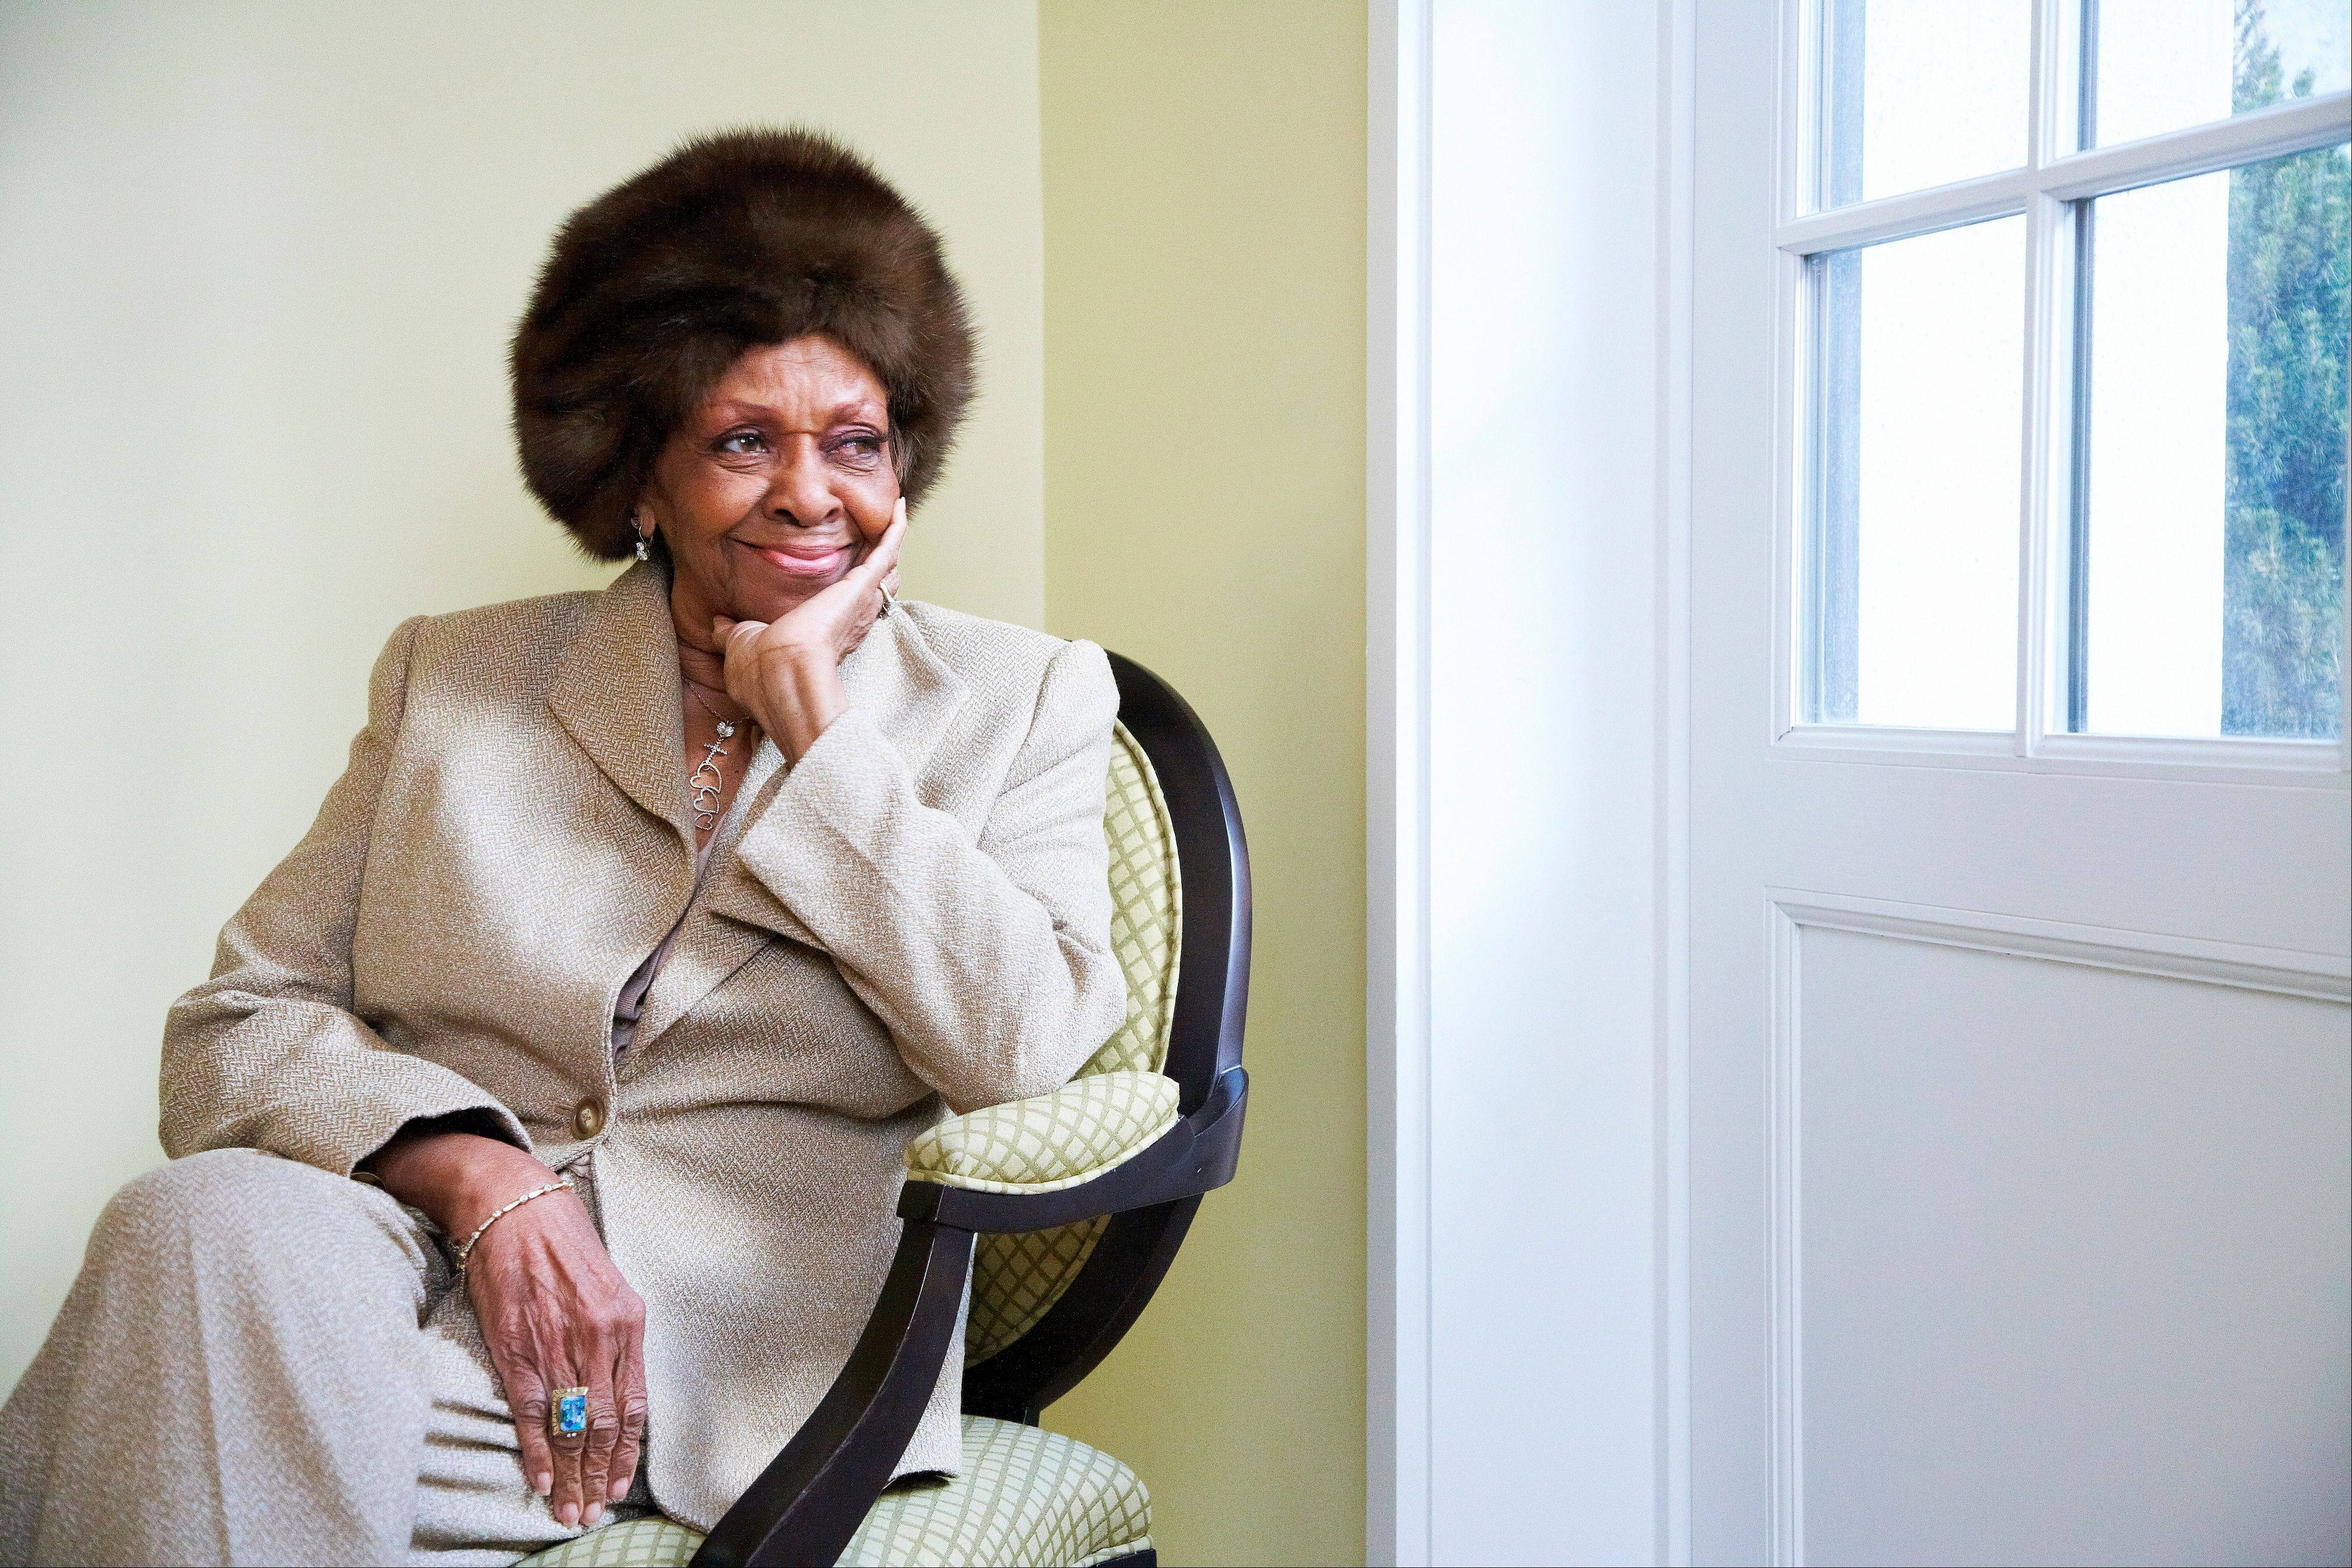 This Jan. 22, 2013 photo shows American gospel singer and author Cissy Houston posing for a portrait in New York. Houston, mother of the late singer Whitney Houston, is releasing a book, �Remembering Whitney,� on Tuesday, Jan. 29.